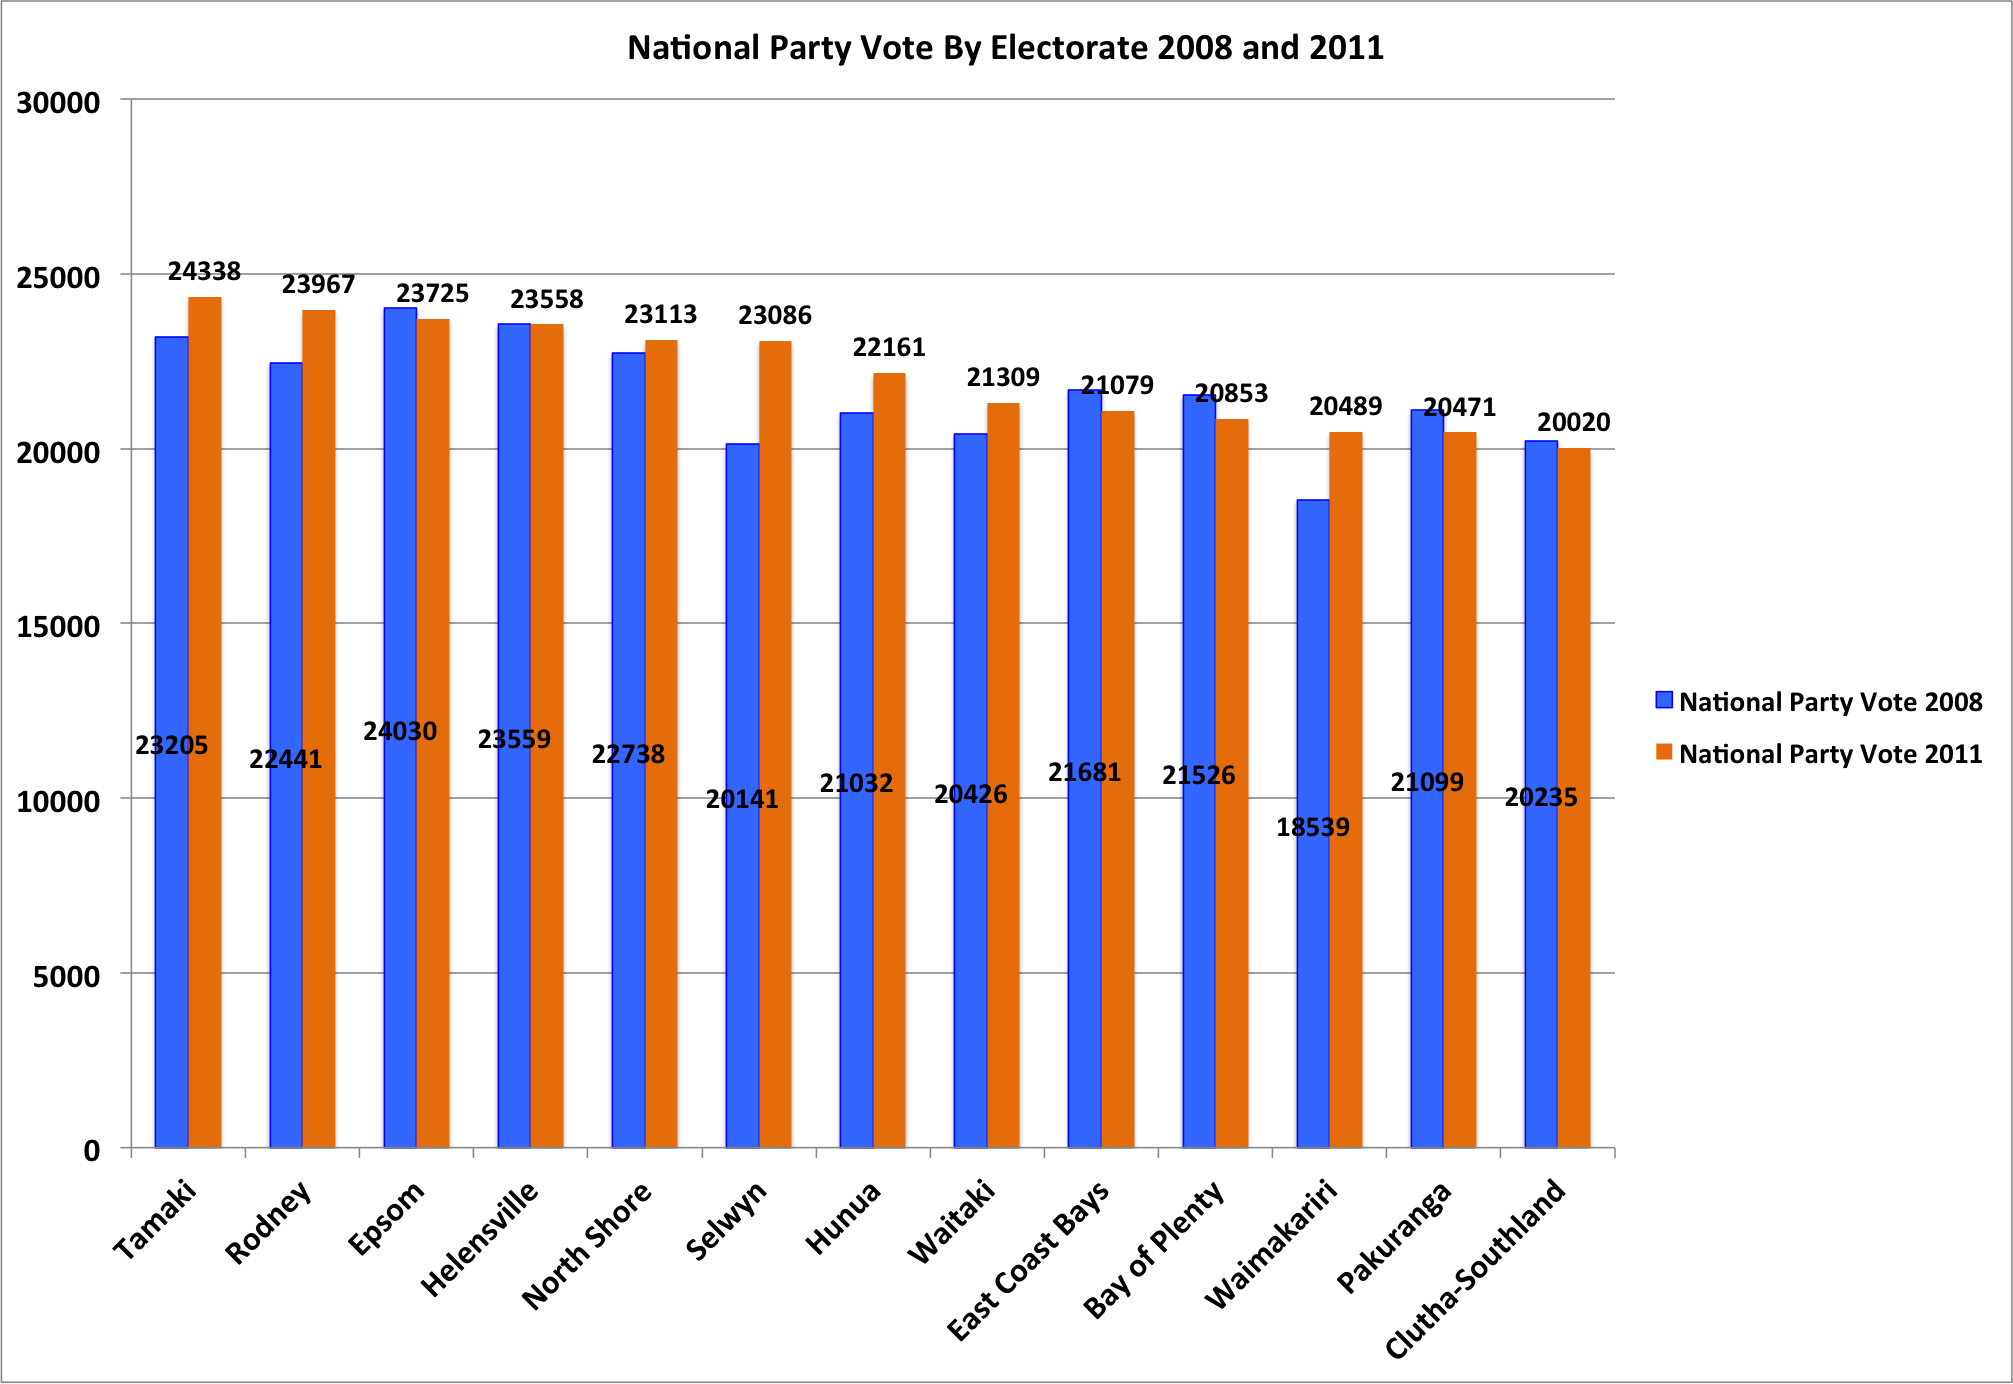 National Party Vote by Electorate 2008 and 2011